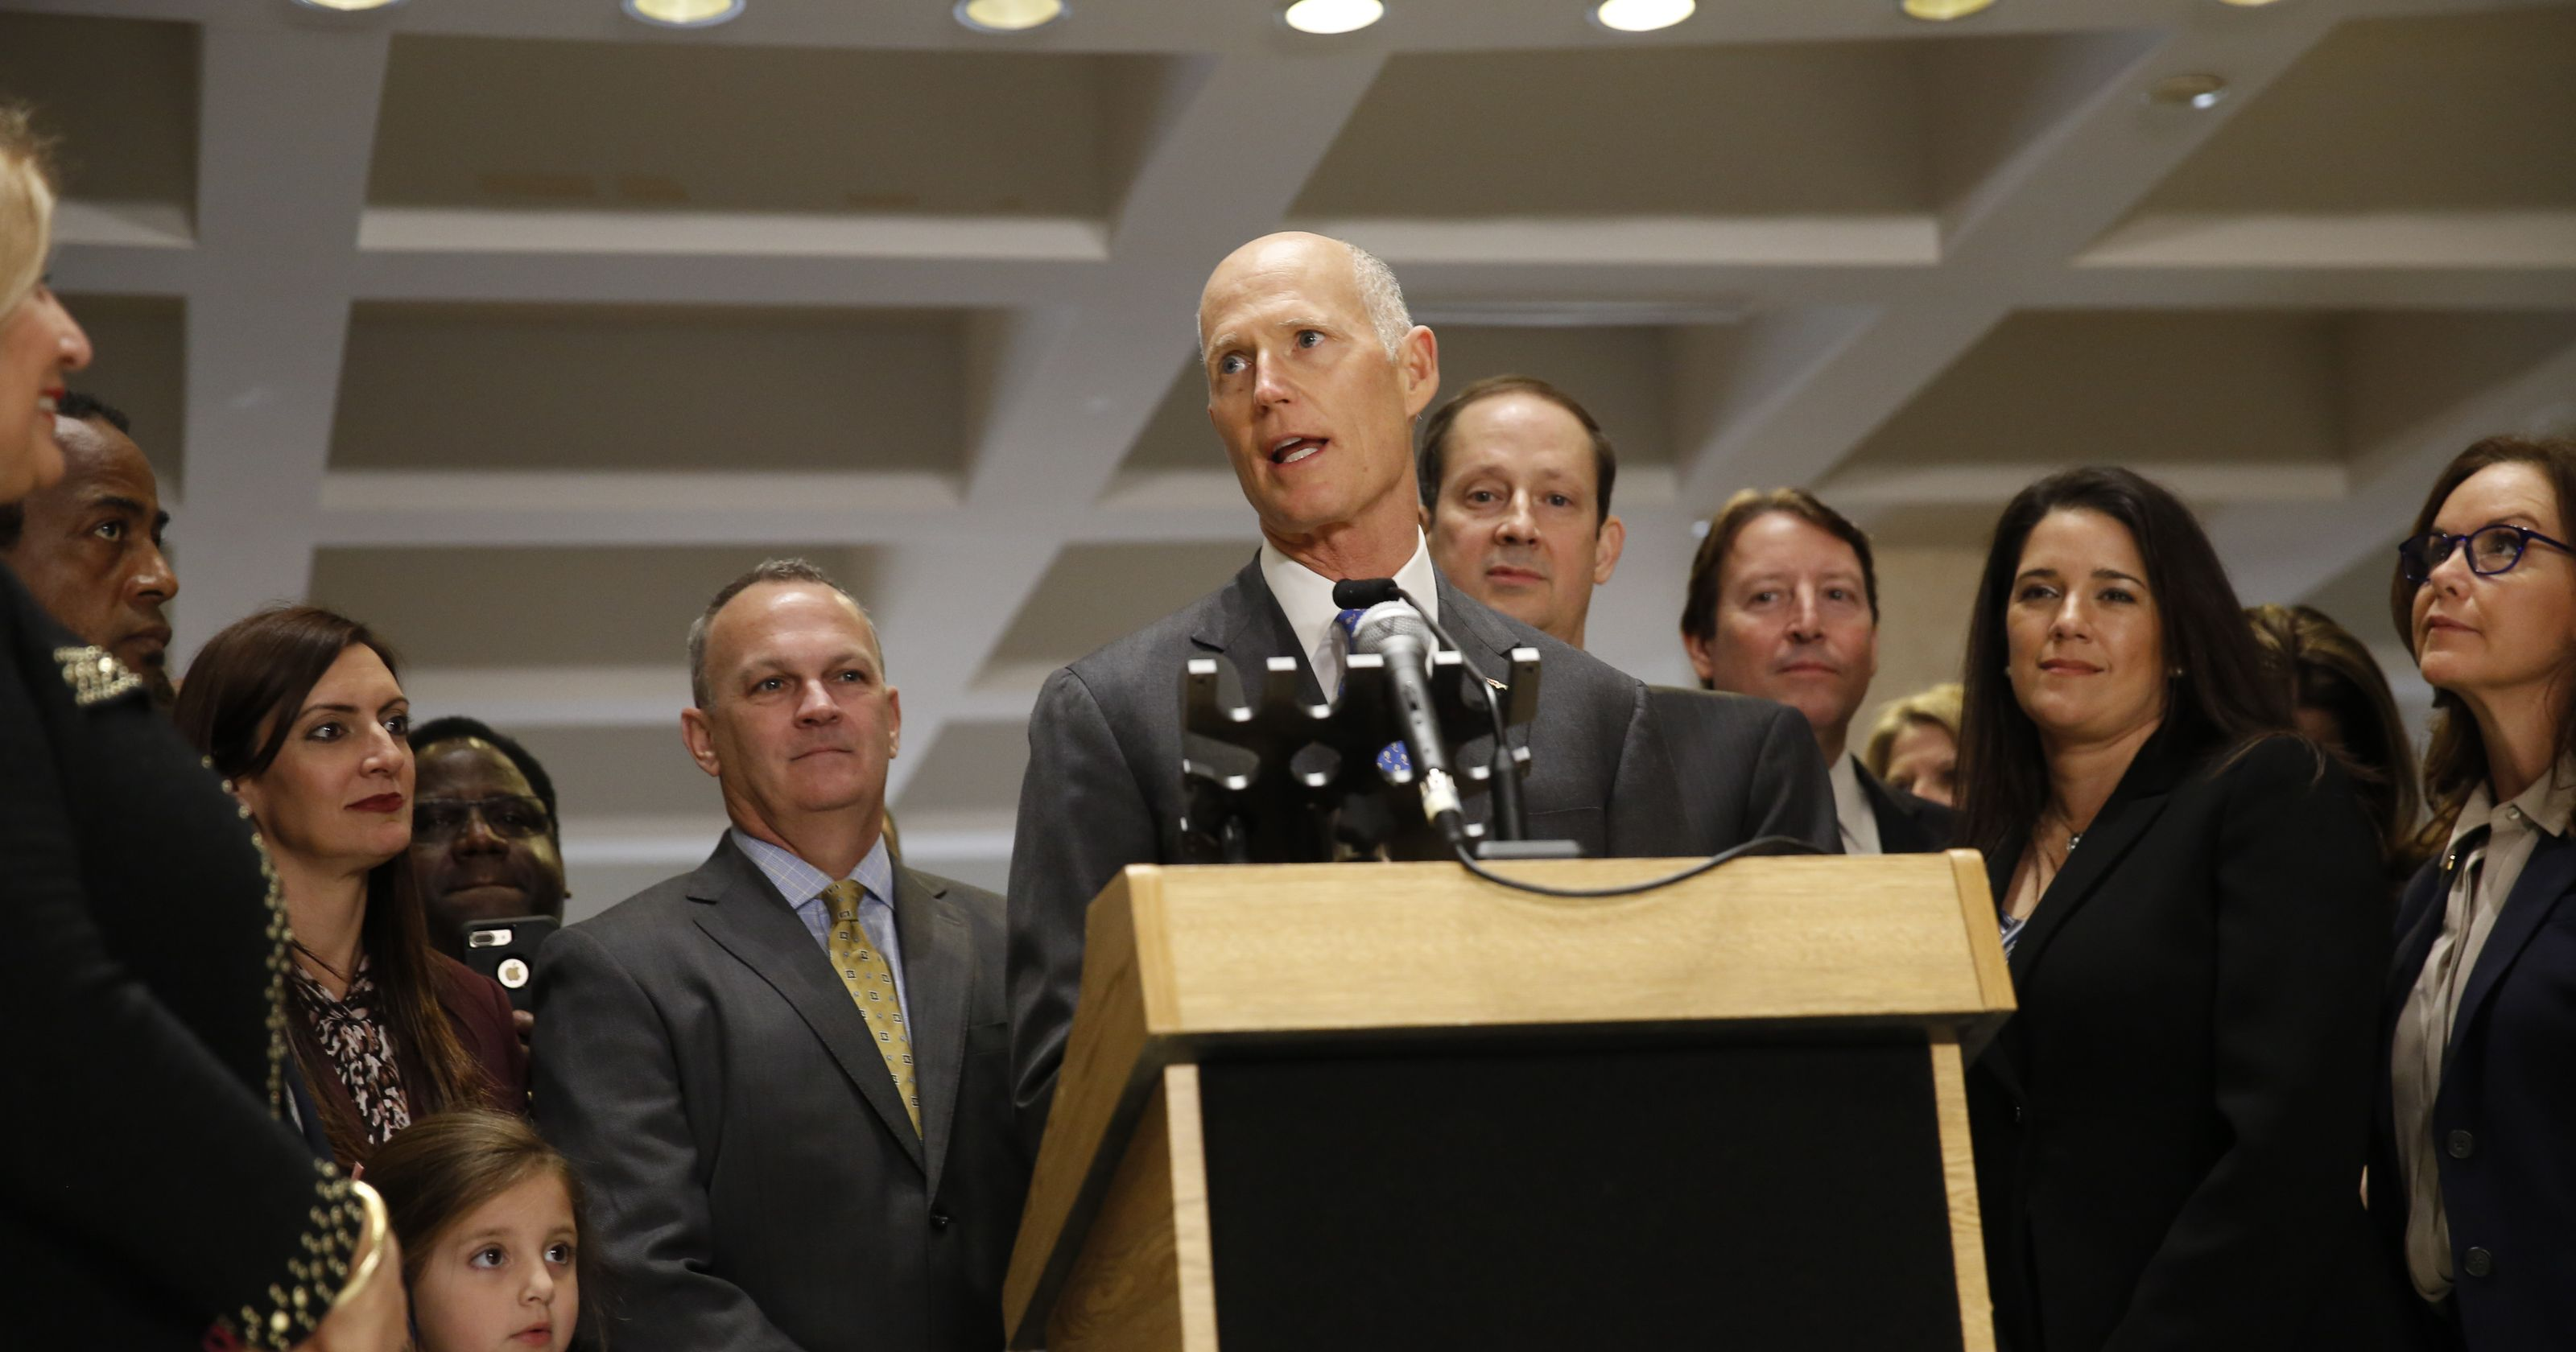 Rick-Scott-and-the-Florida-Cabinet-marks-an-easement-record..jpg